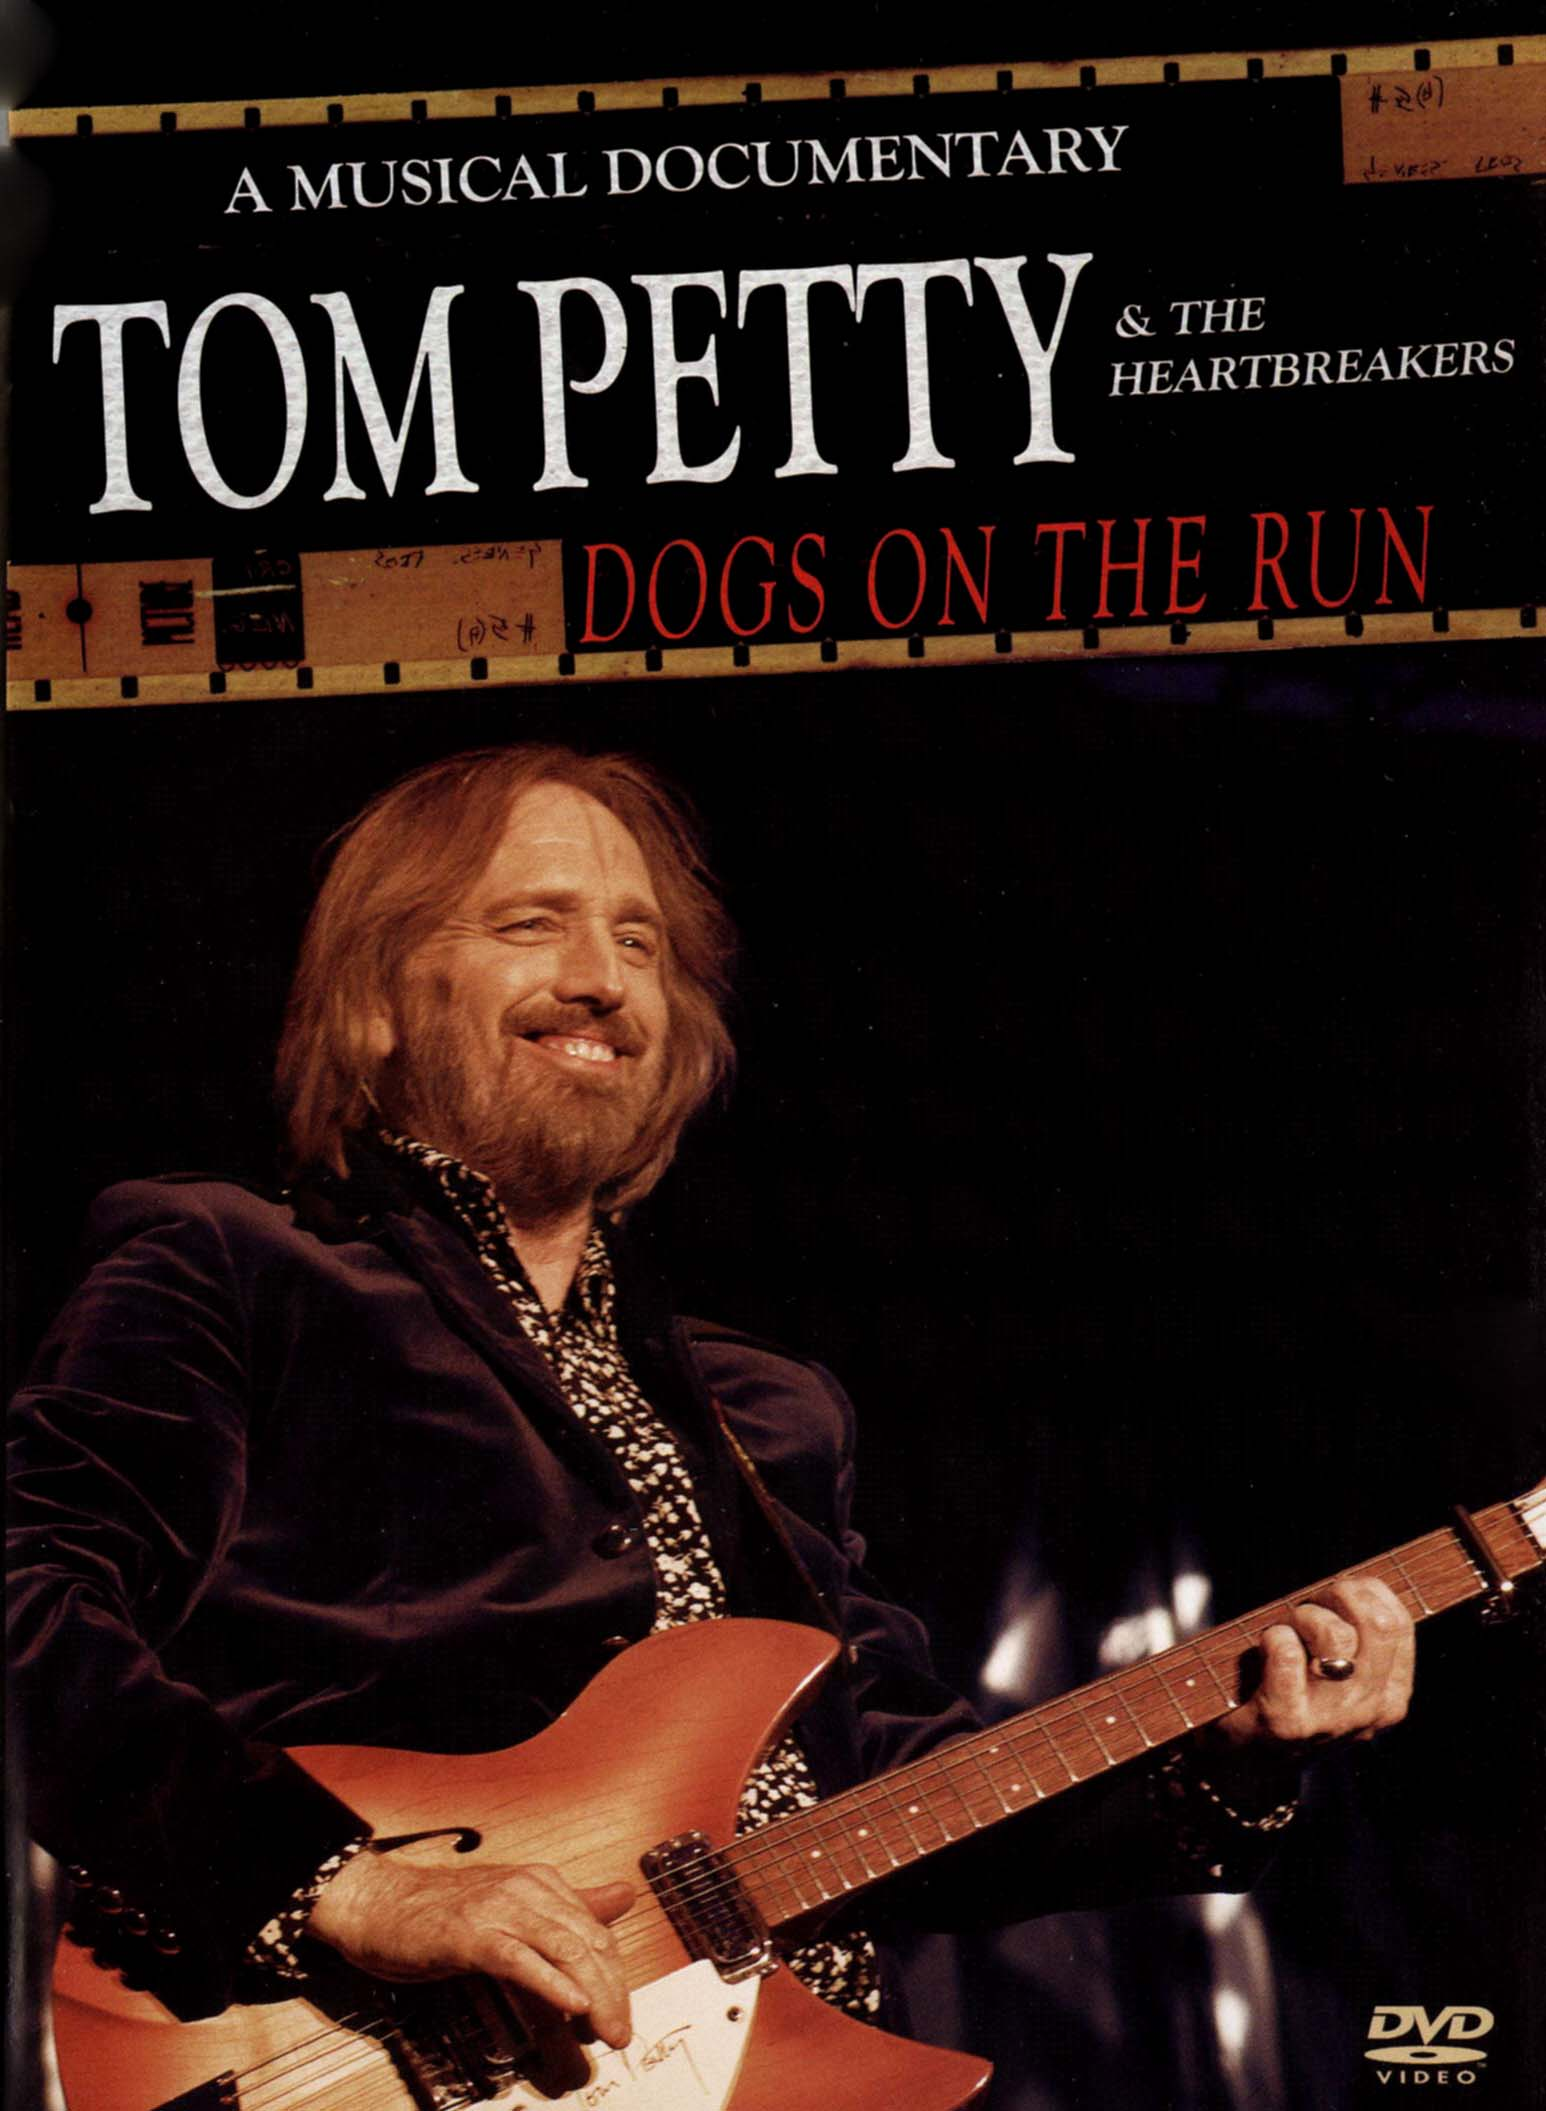 Tom Petty & the Heartbreakers: Dogs On the Run